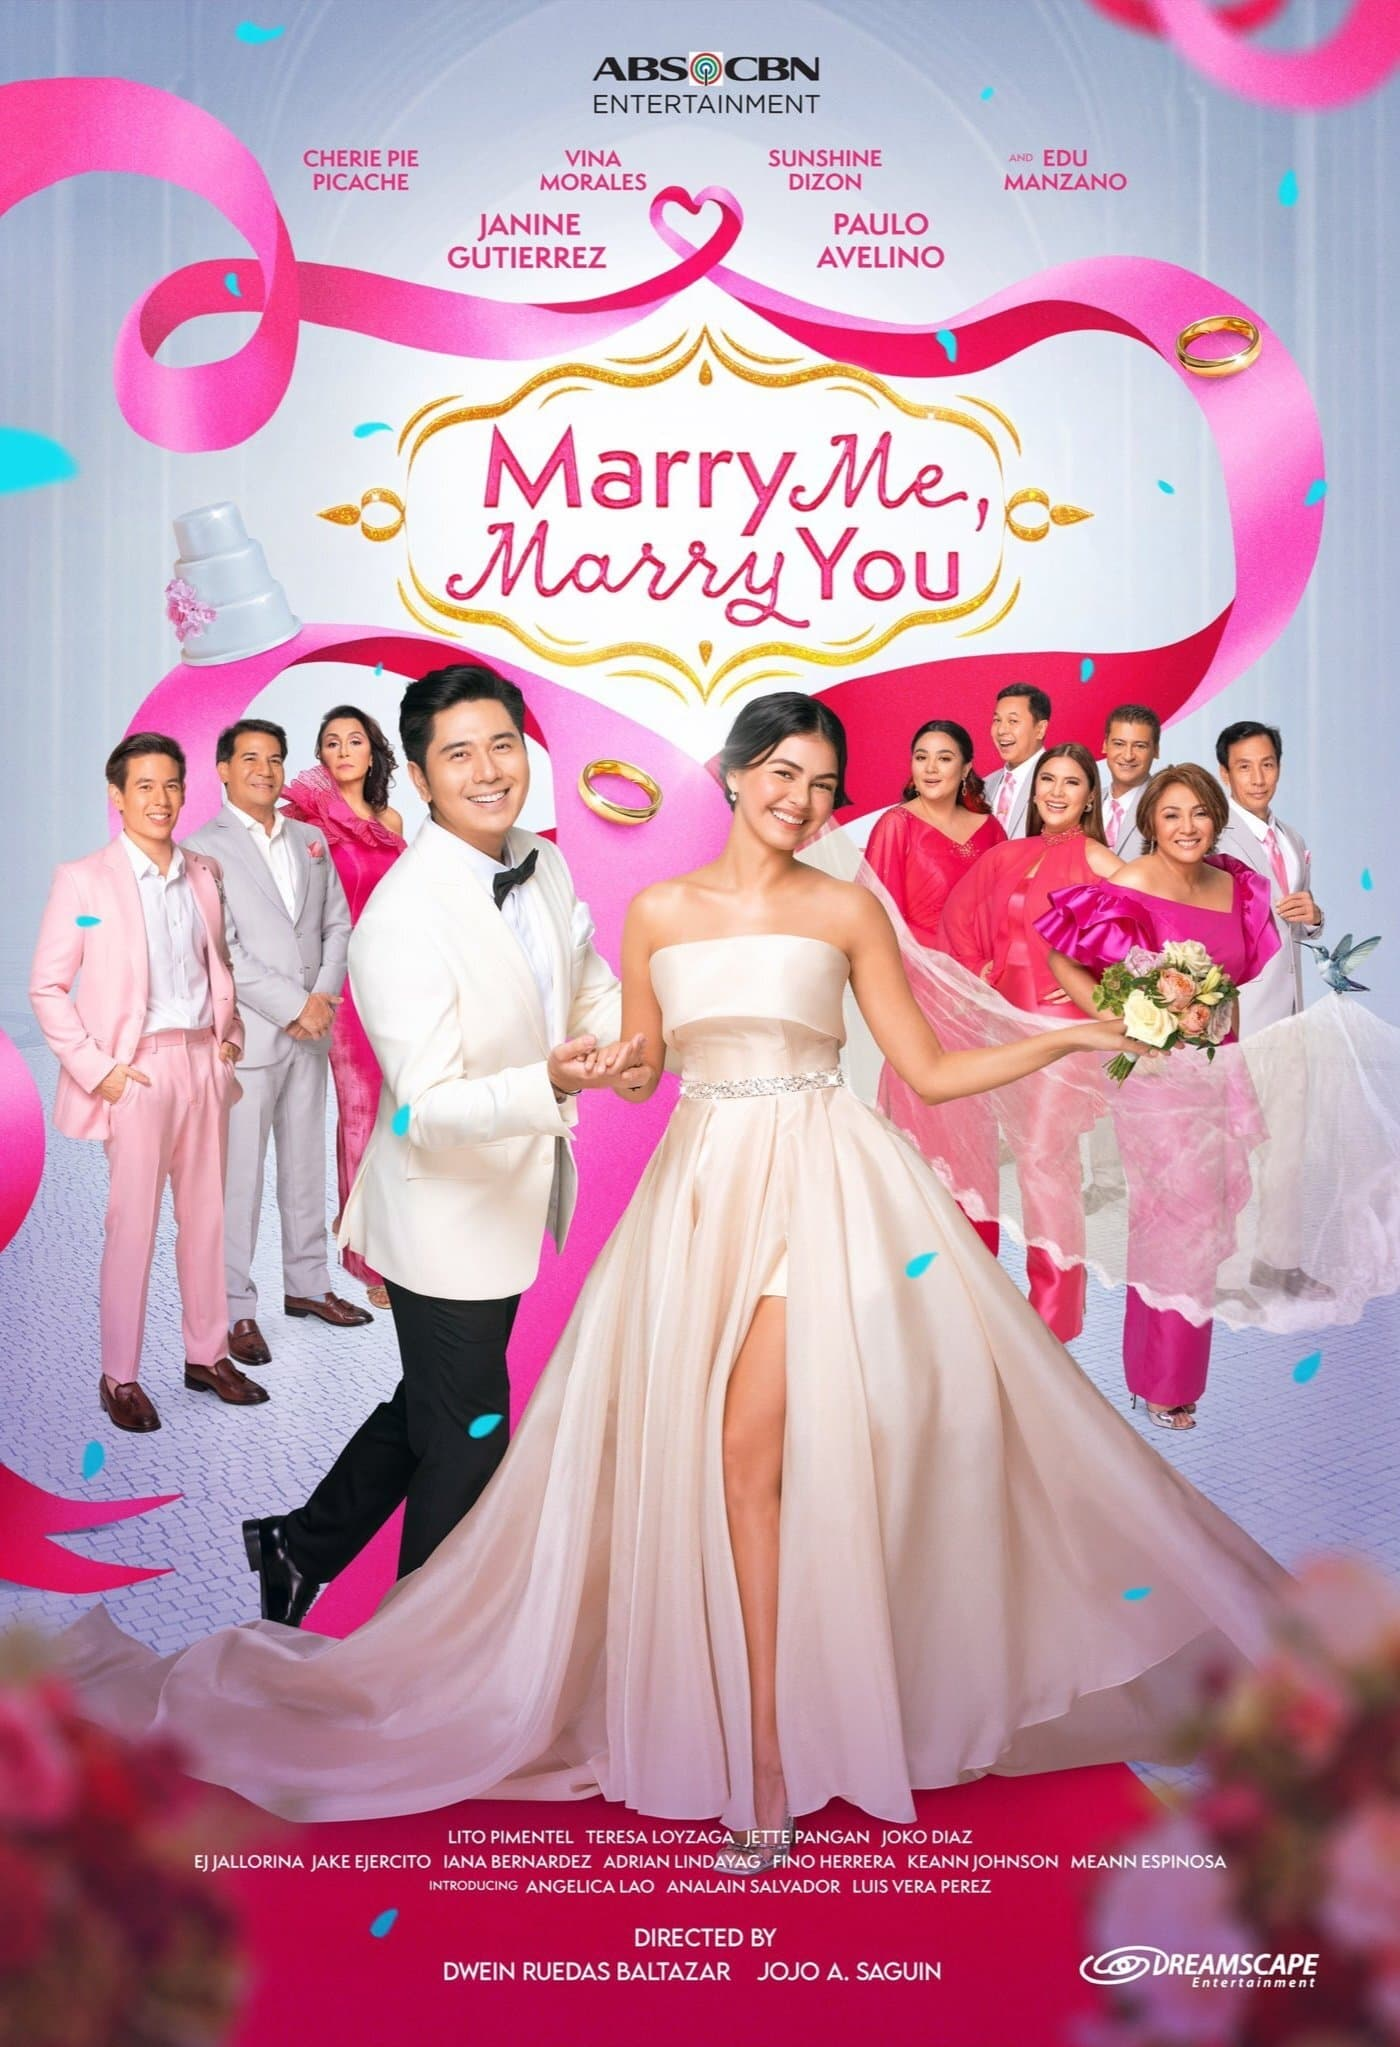 Marry Me, Marry You TV Shows About Love Triangle